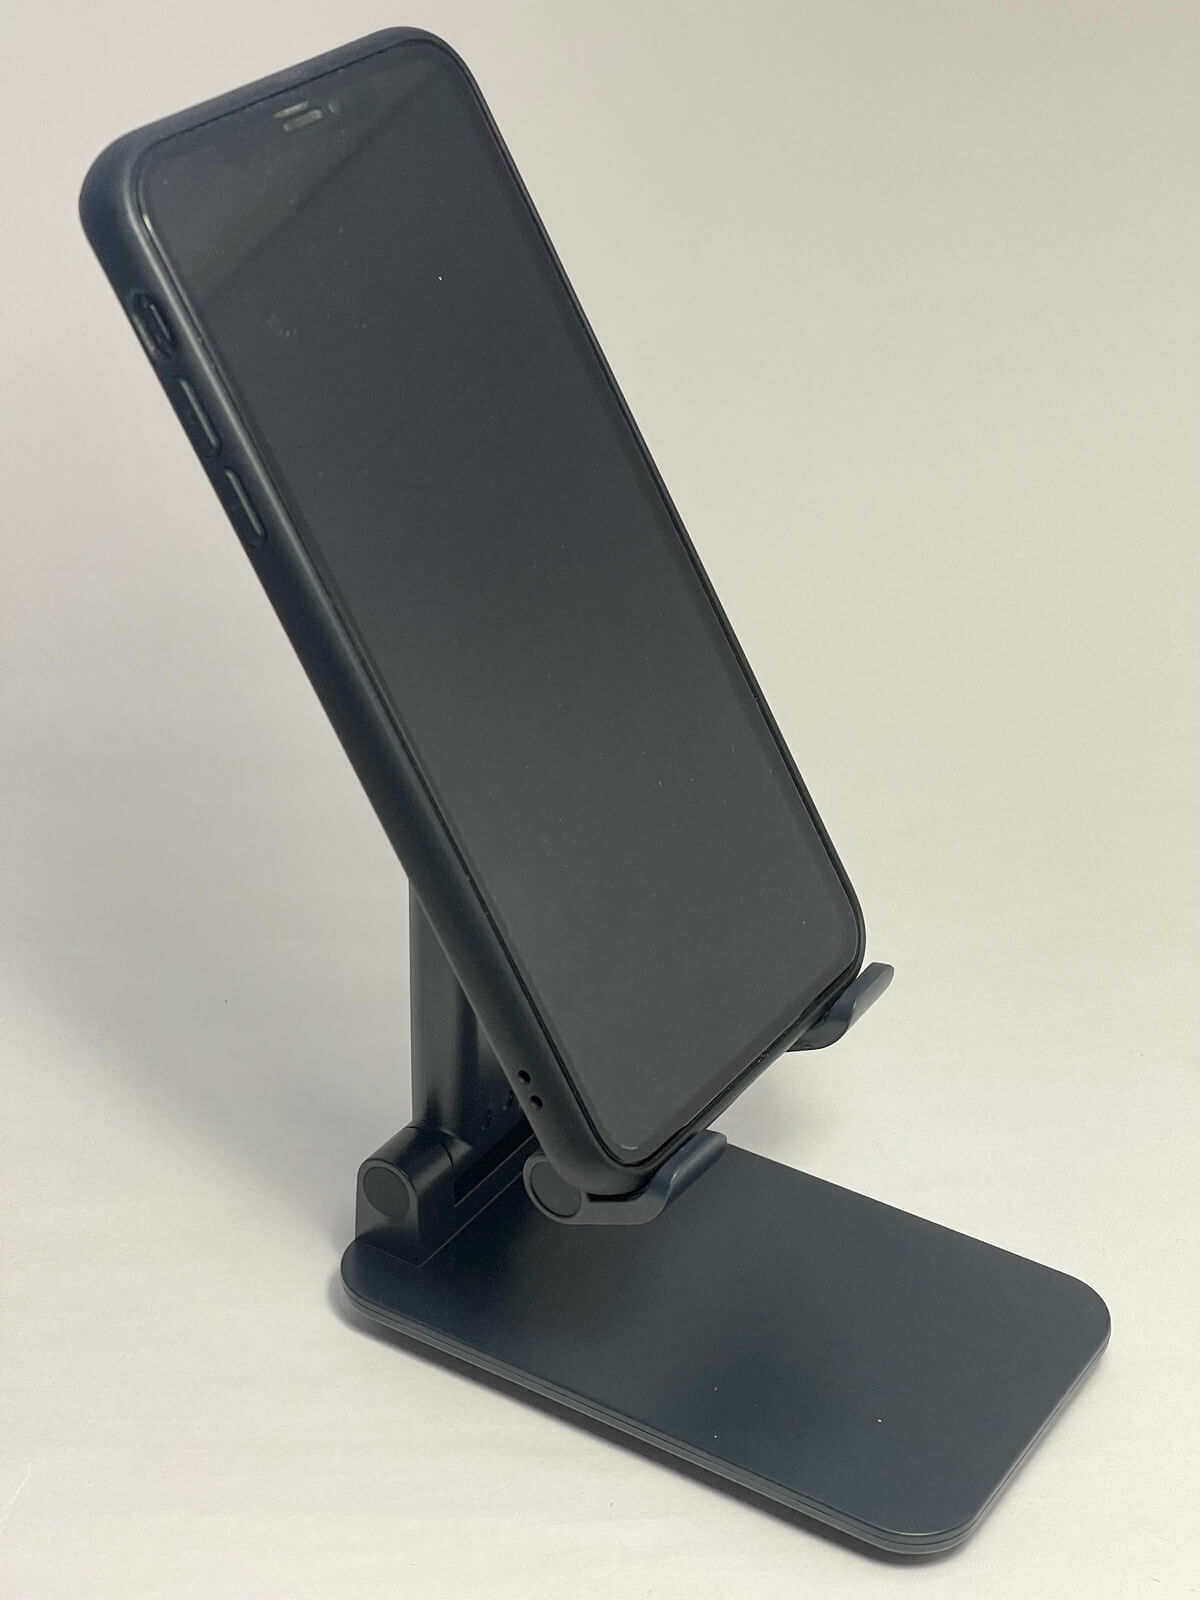 iphone12-stand-01-photo-008